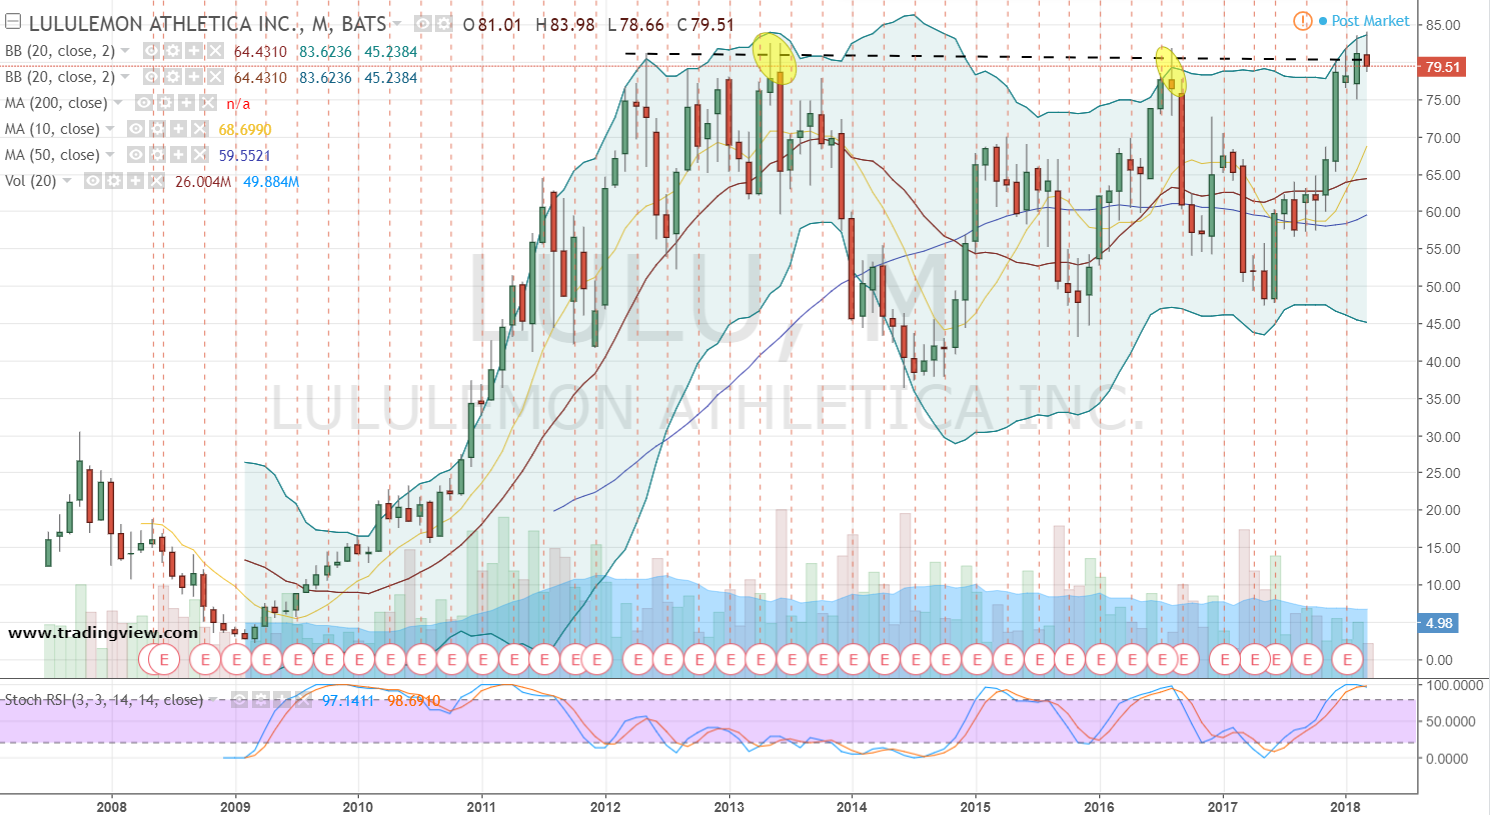 What Next for Lululemon Athletica Inc. (LULU) Stock After Today's Huge Increase?